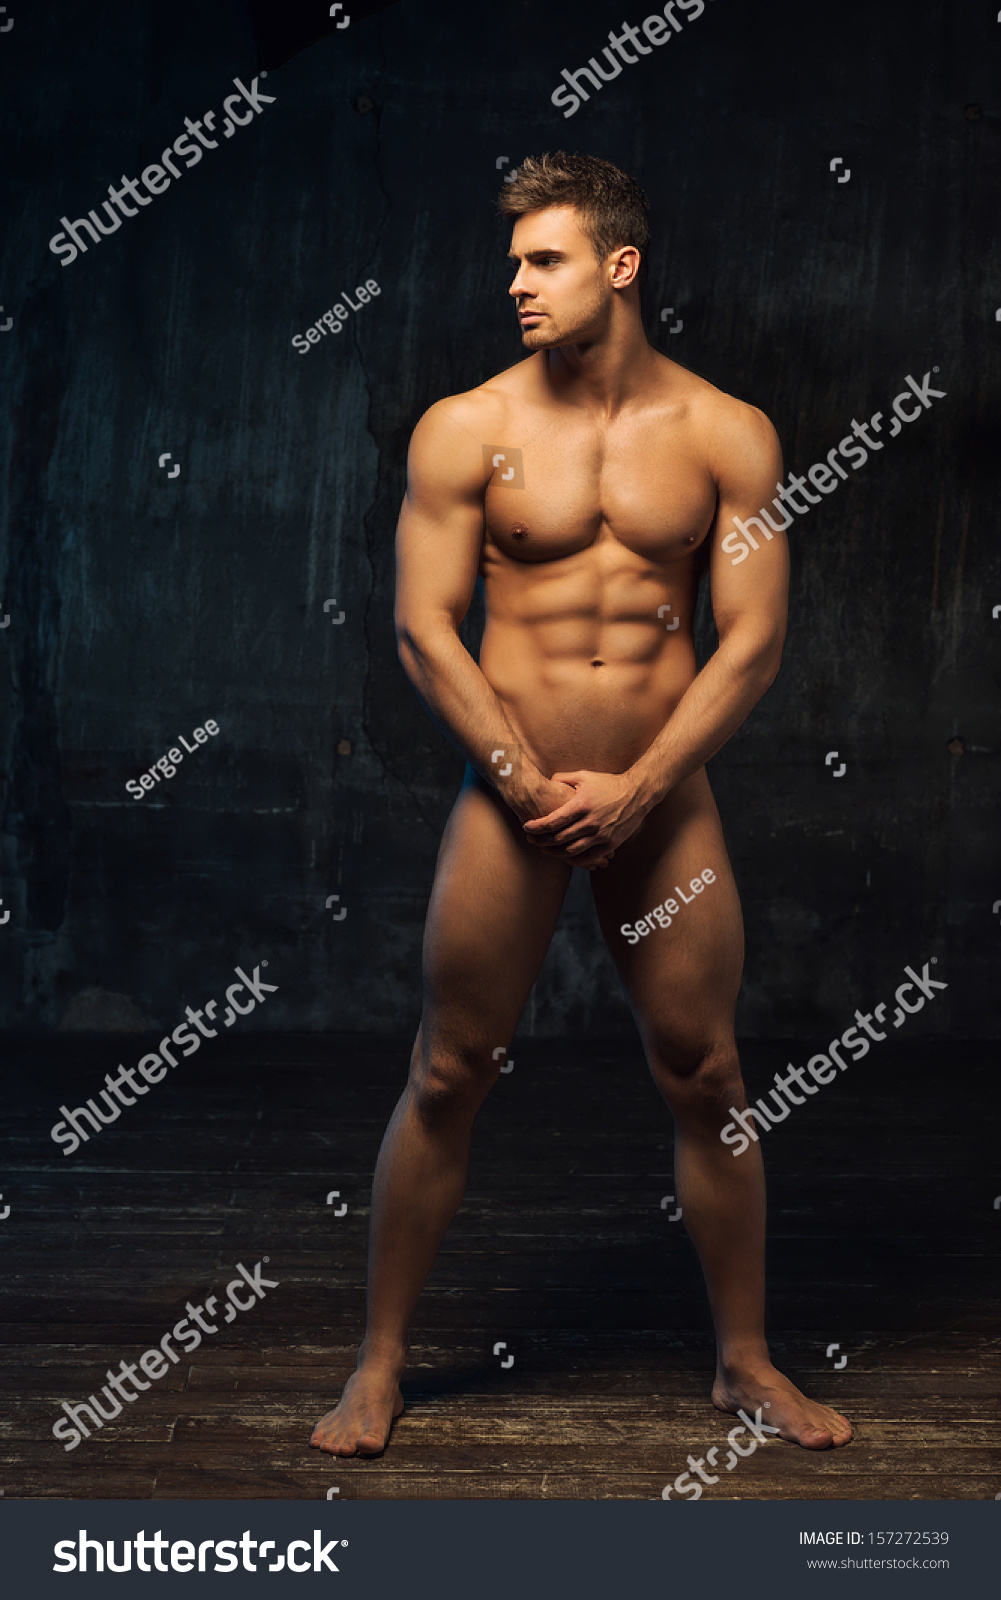 Man naked picture